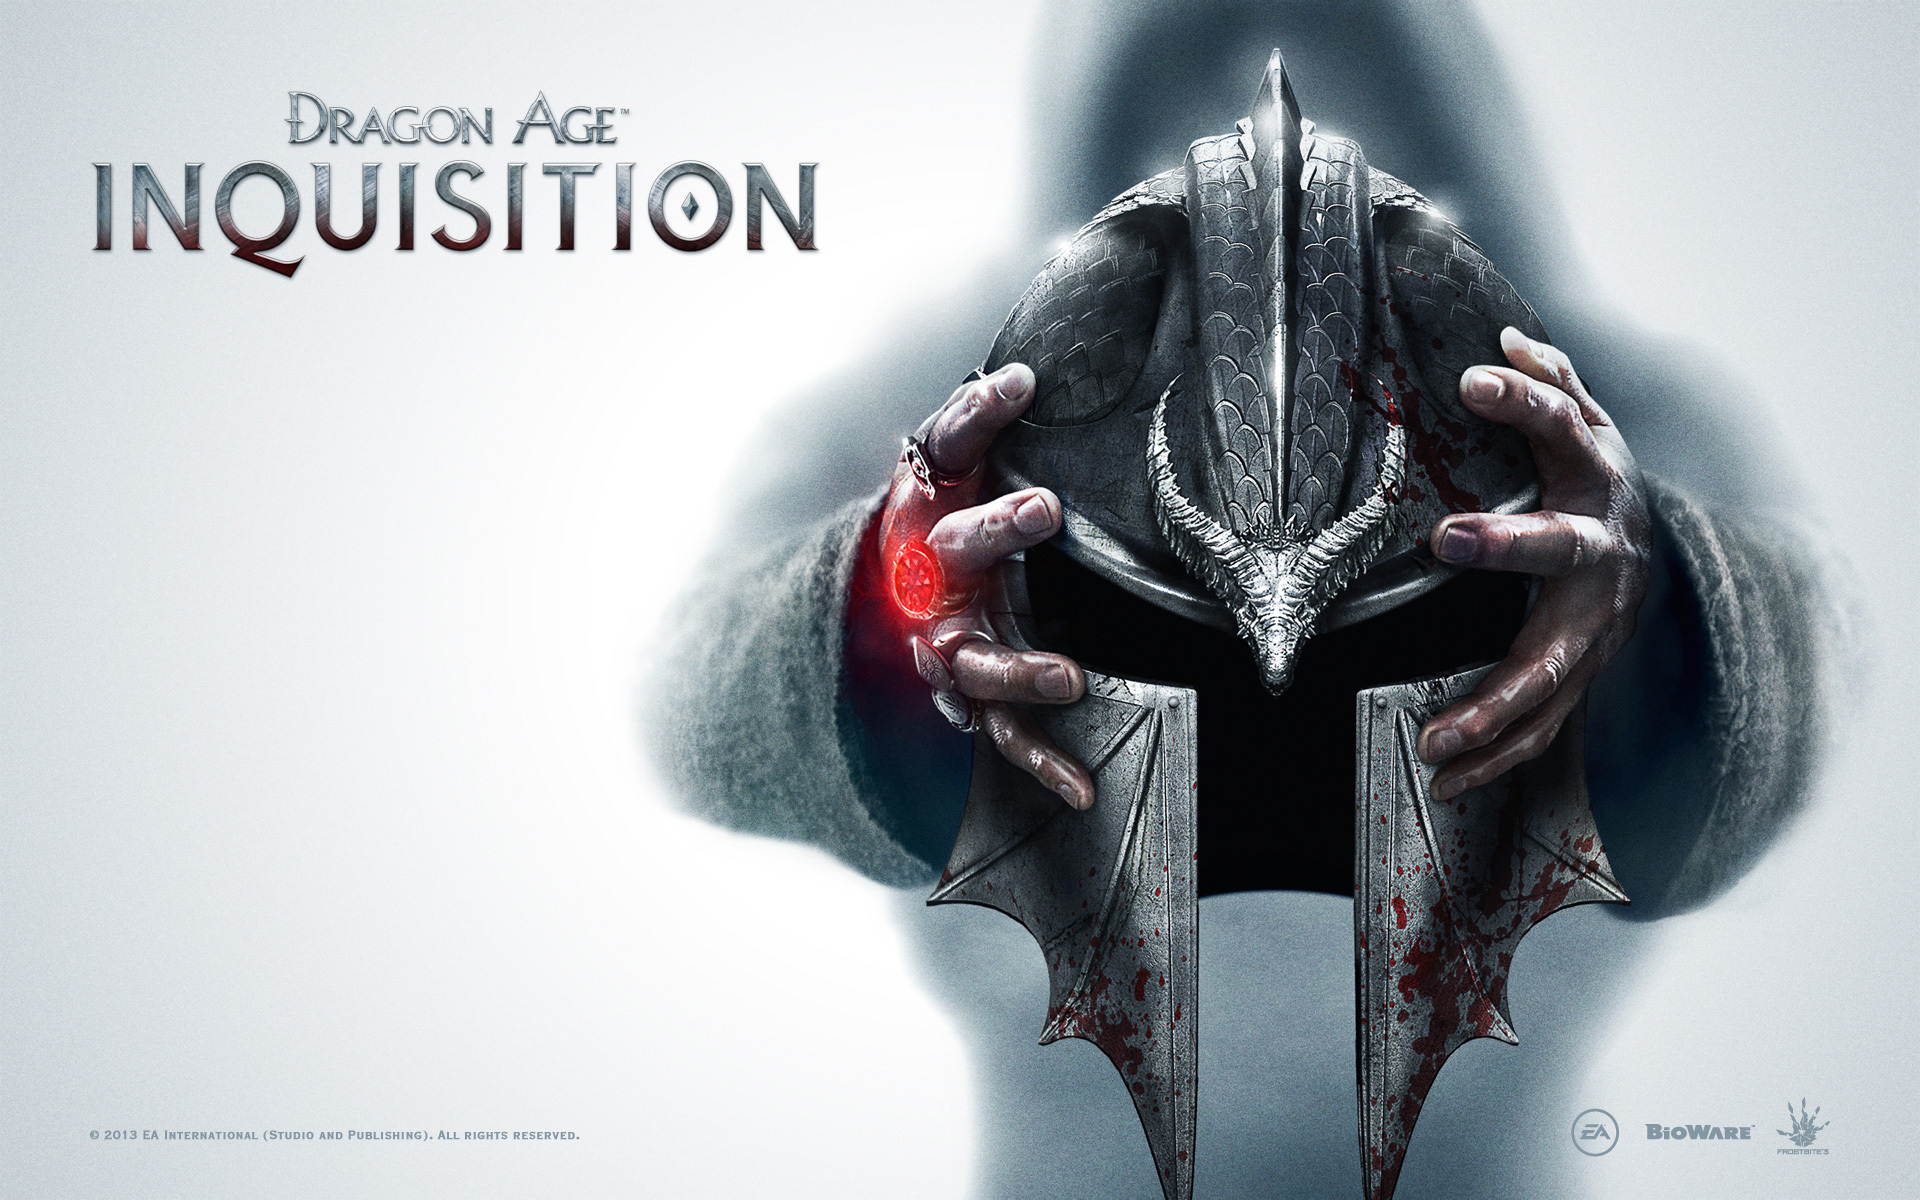 Dragon Age Inquisition: Expectations/Impressions So Far…